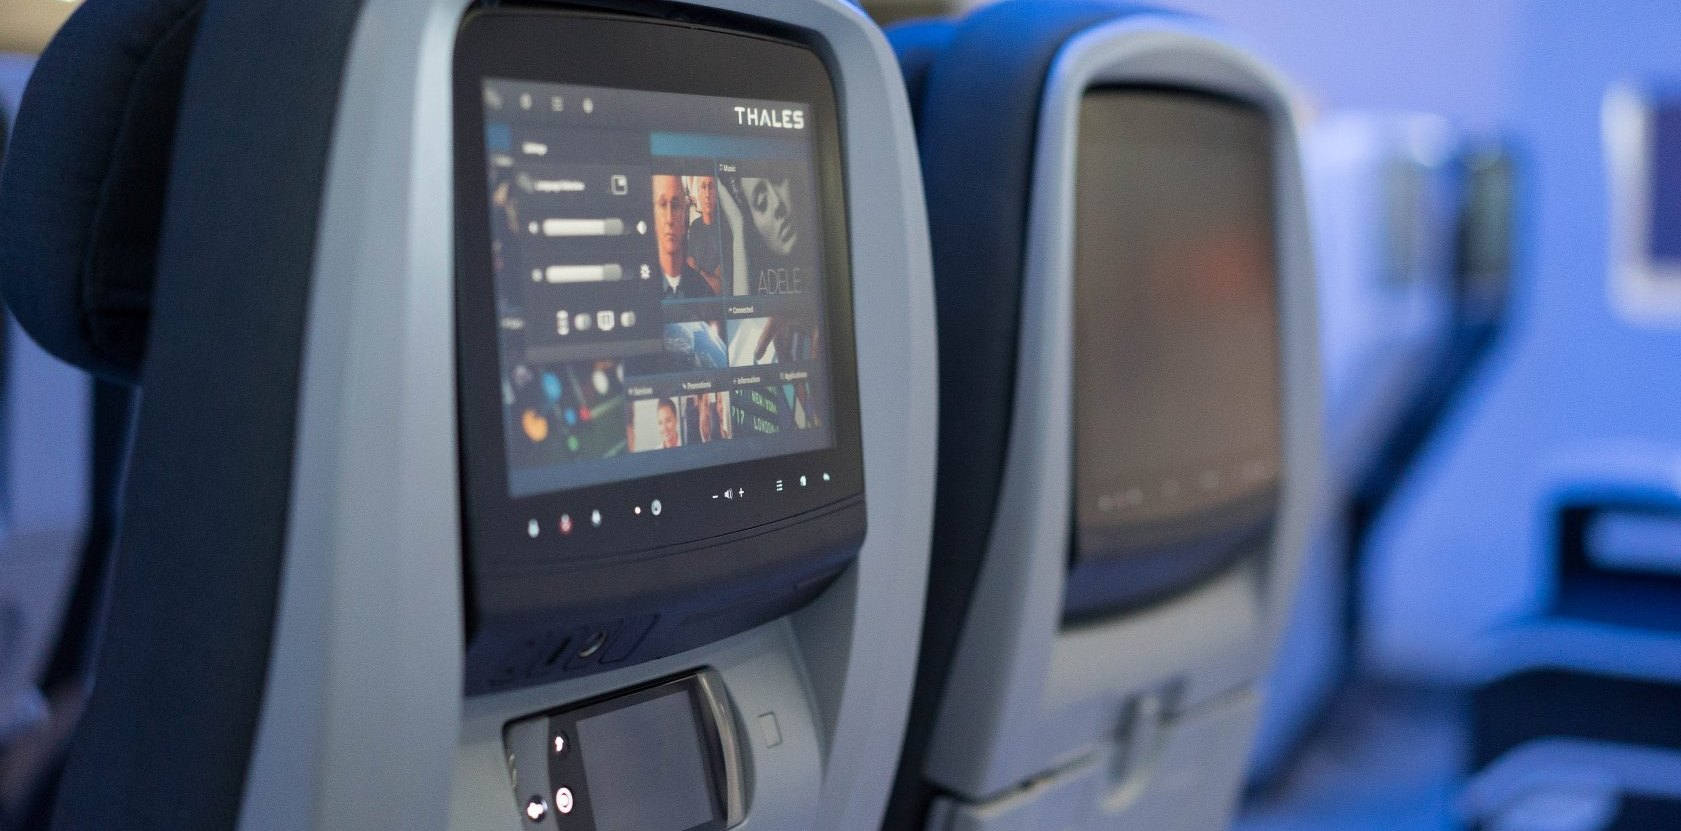 Oman Air first B787 Dreamliner equipped with Thales AVANT system